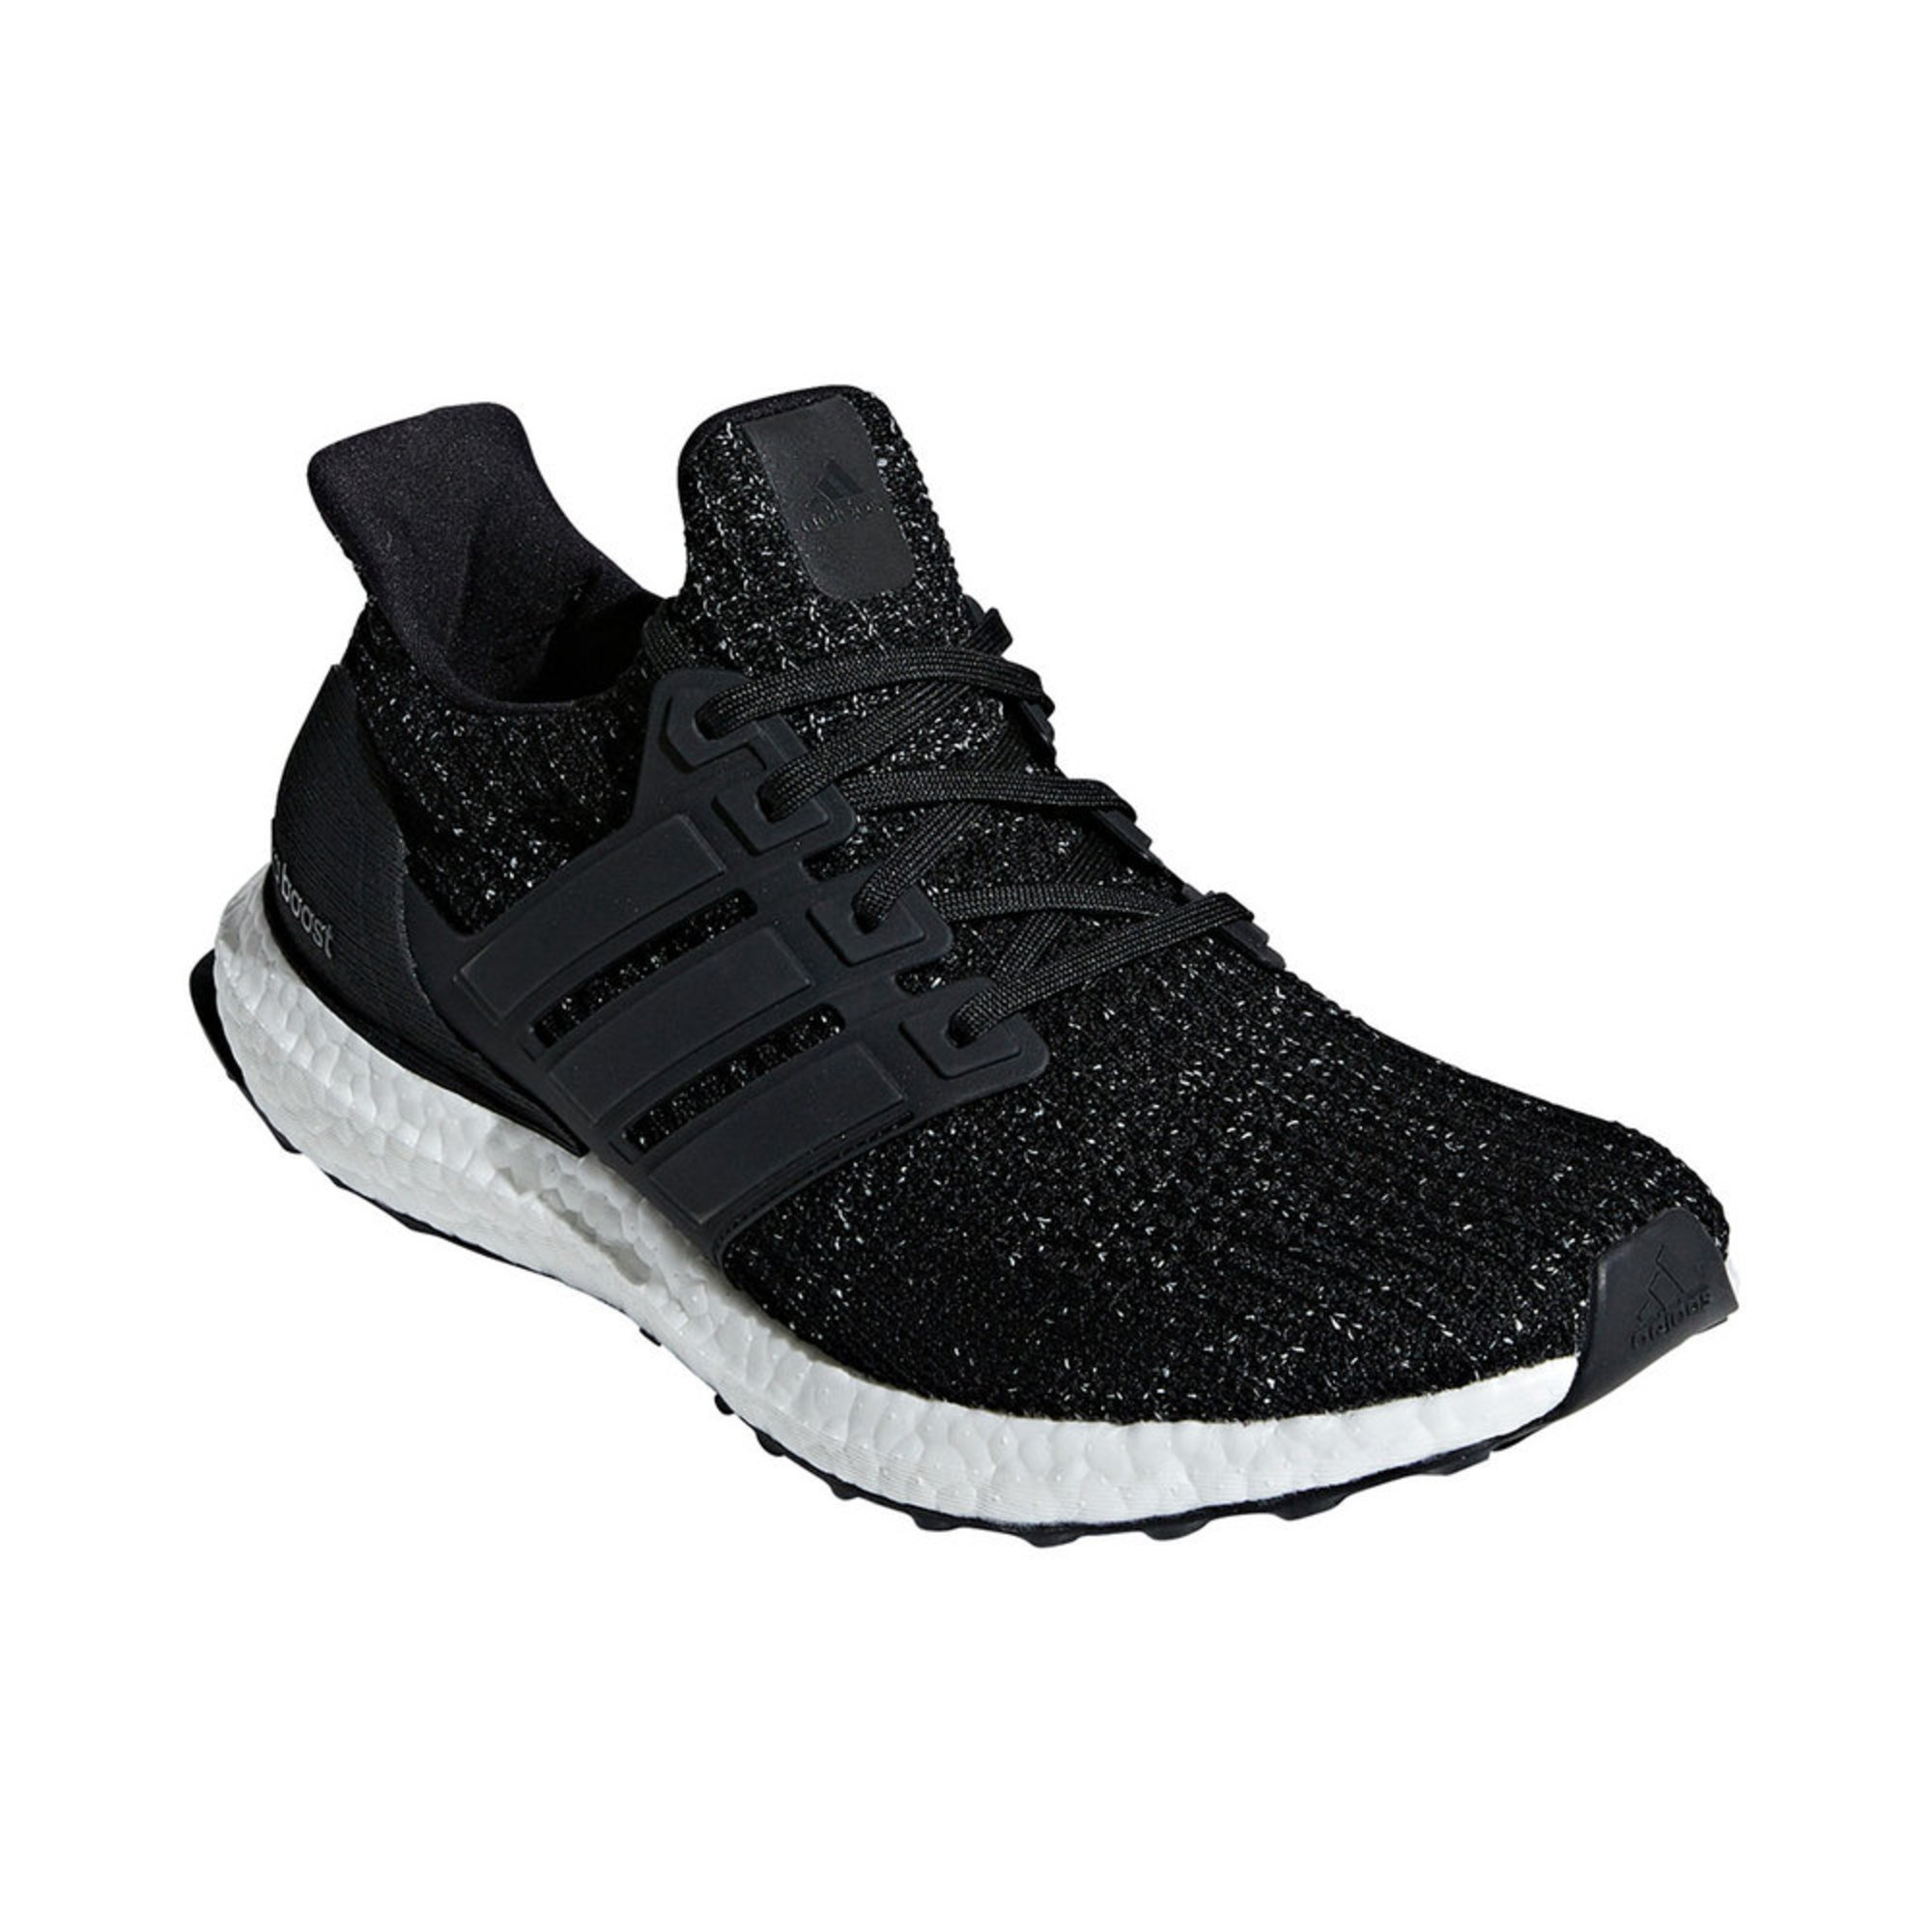 new product 78742 2873a adidas. Adidas Men s UltraBOOST Running Shoe